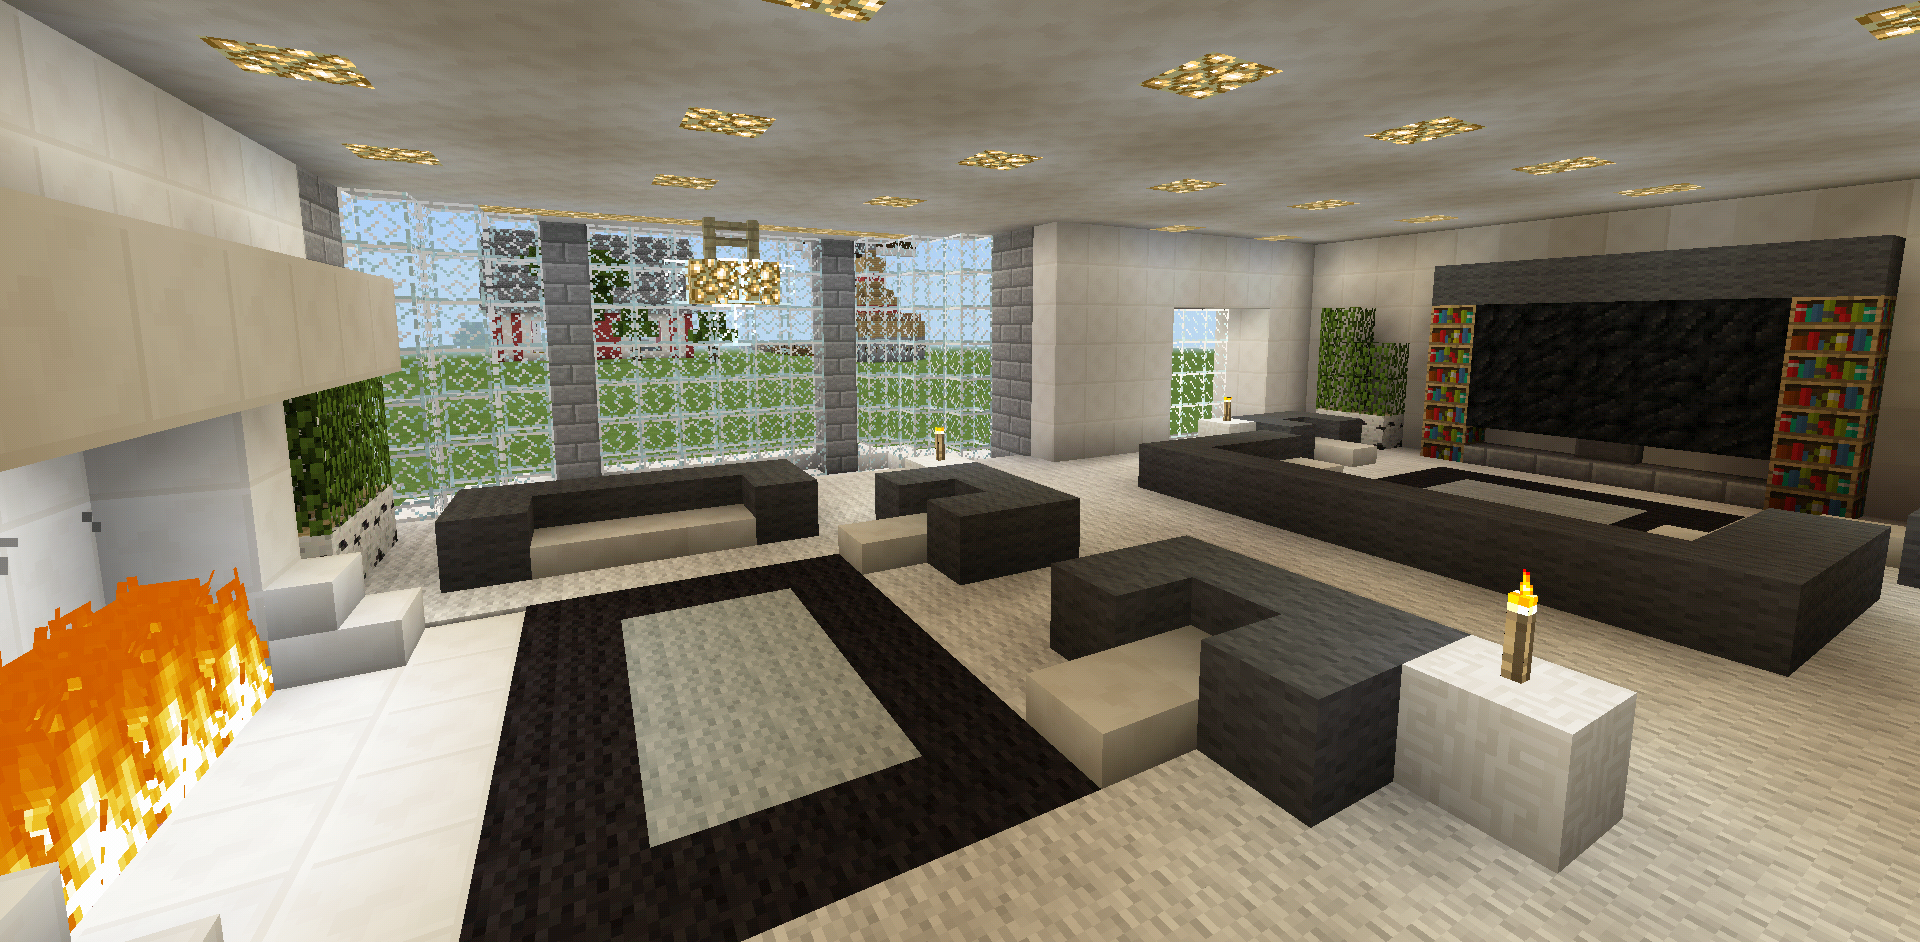 Living Room Minecraft Designs We Highly Hope That Our Divine Design May Inspire You In Choosing Your Own House 7